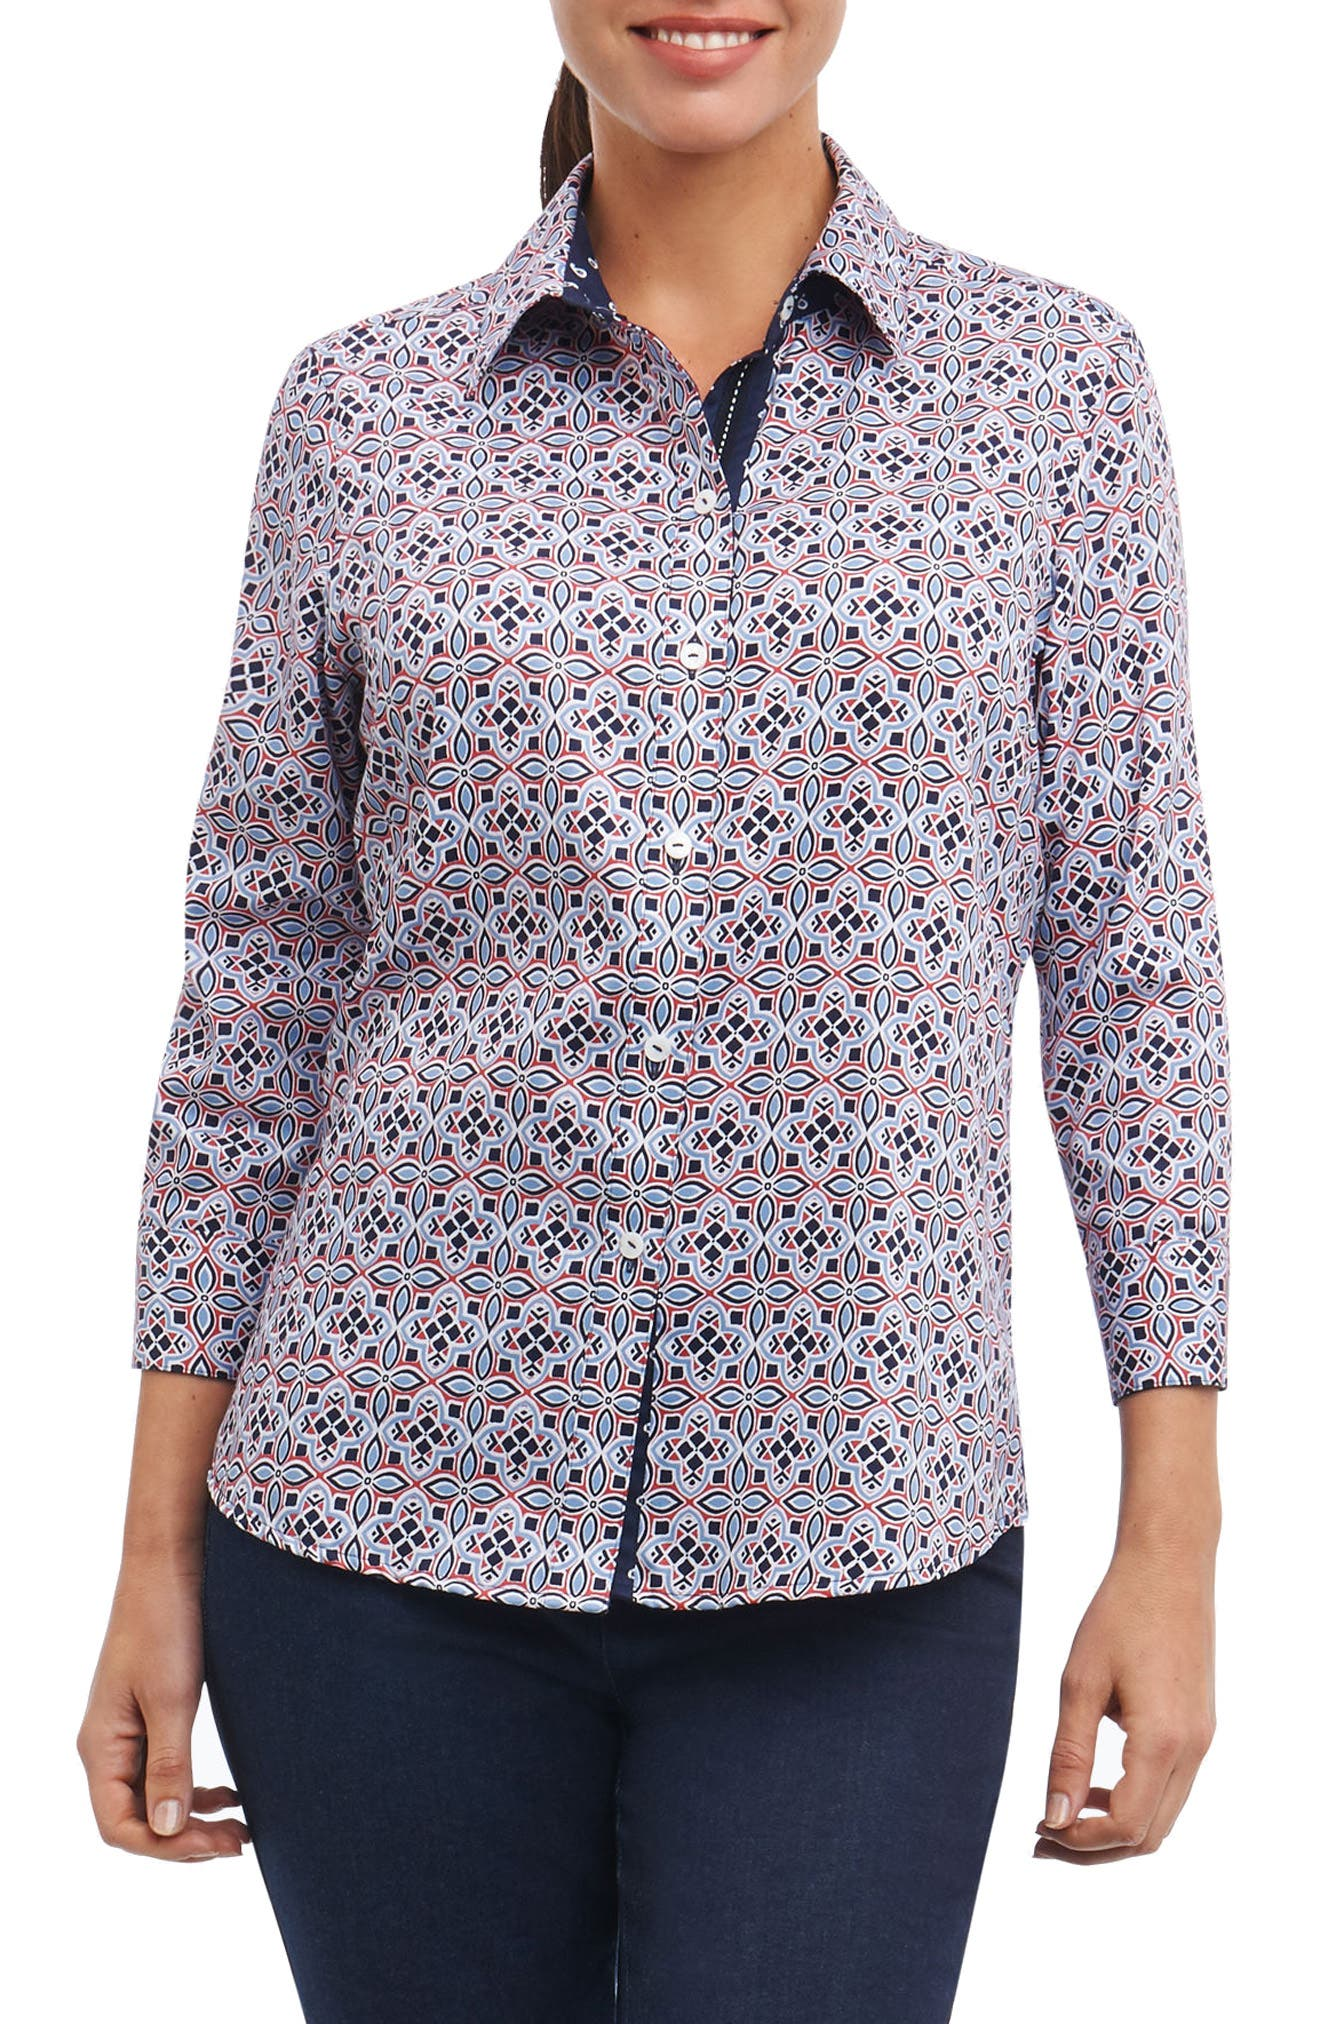 Ava Non-Iron Tile Print Cotton Shirt,                             Alternate thumbnail 3, color,                             Multi